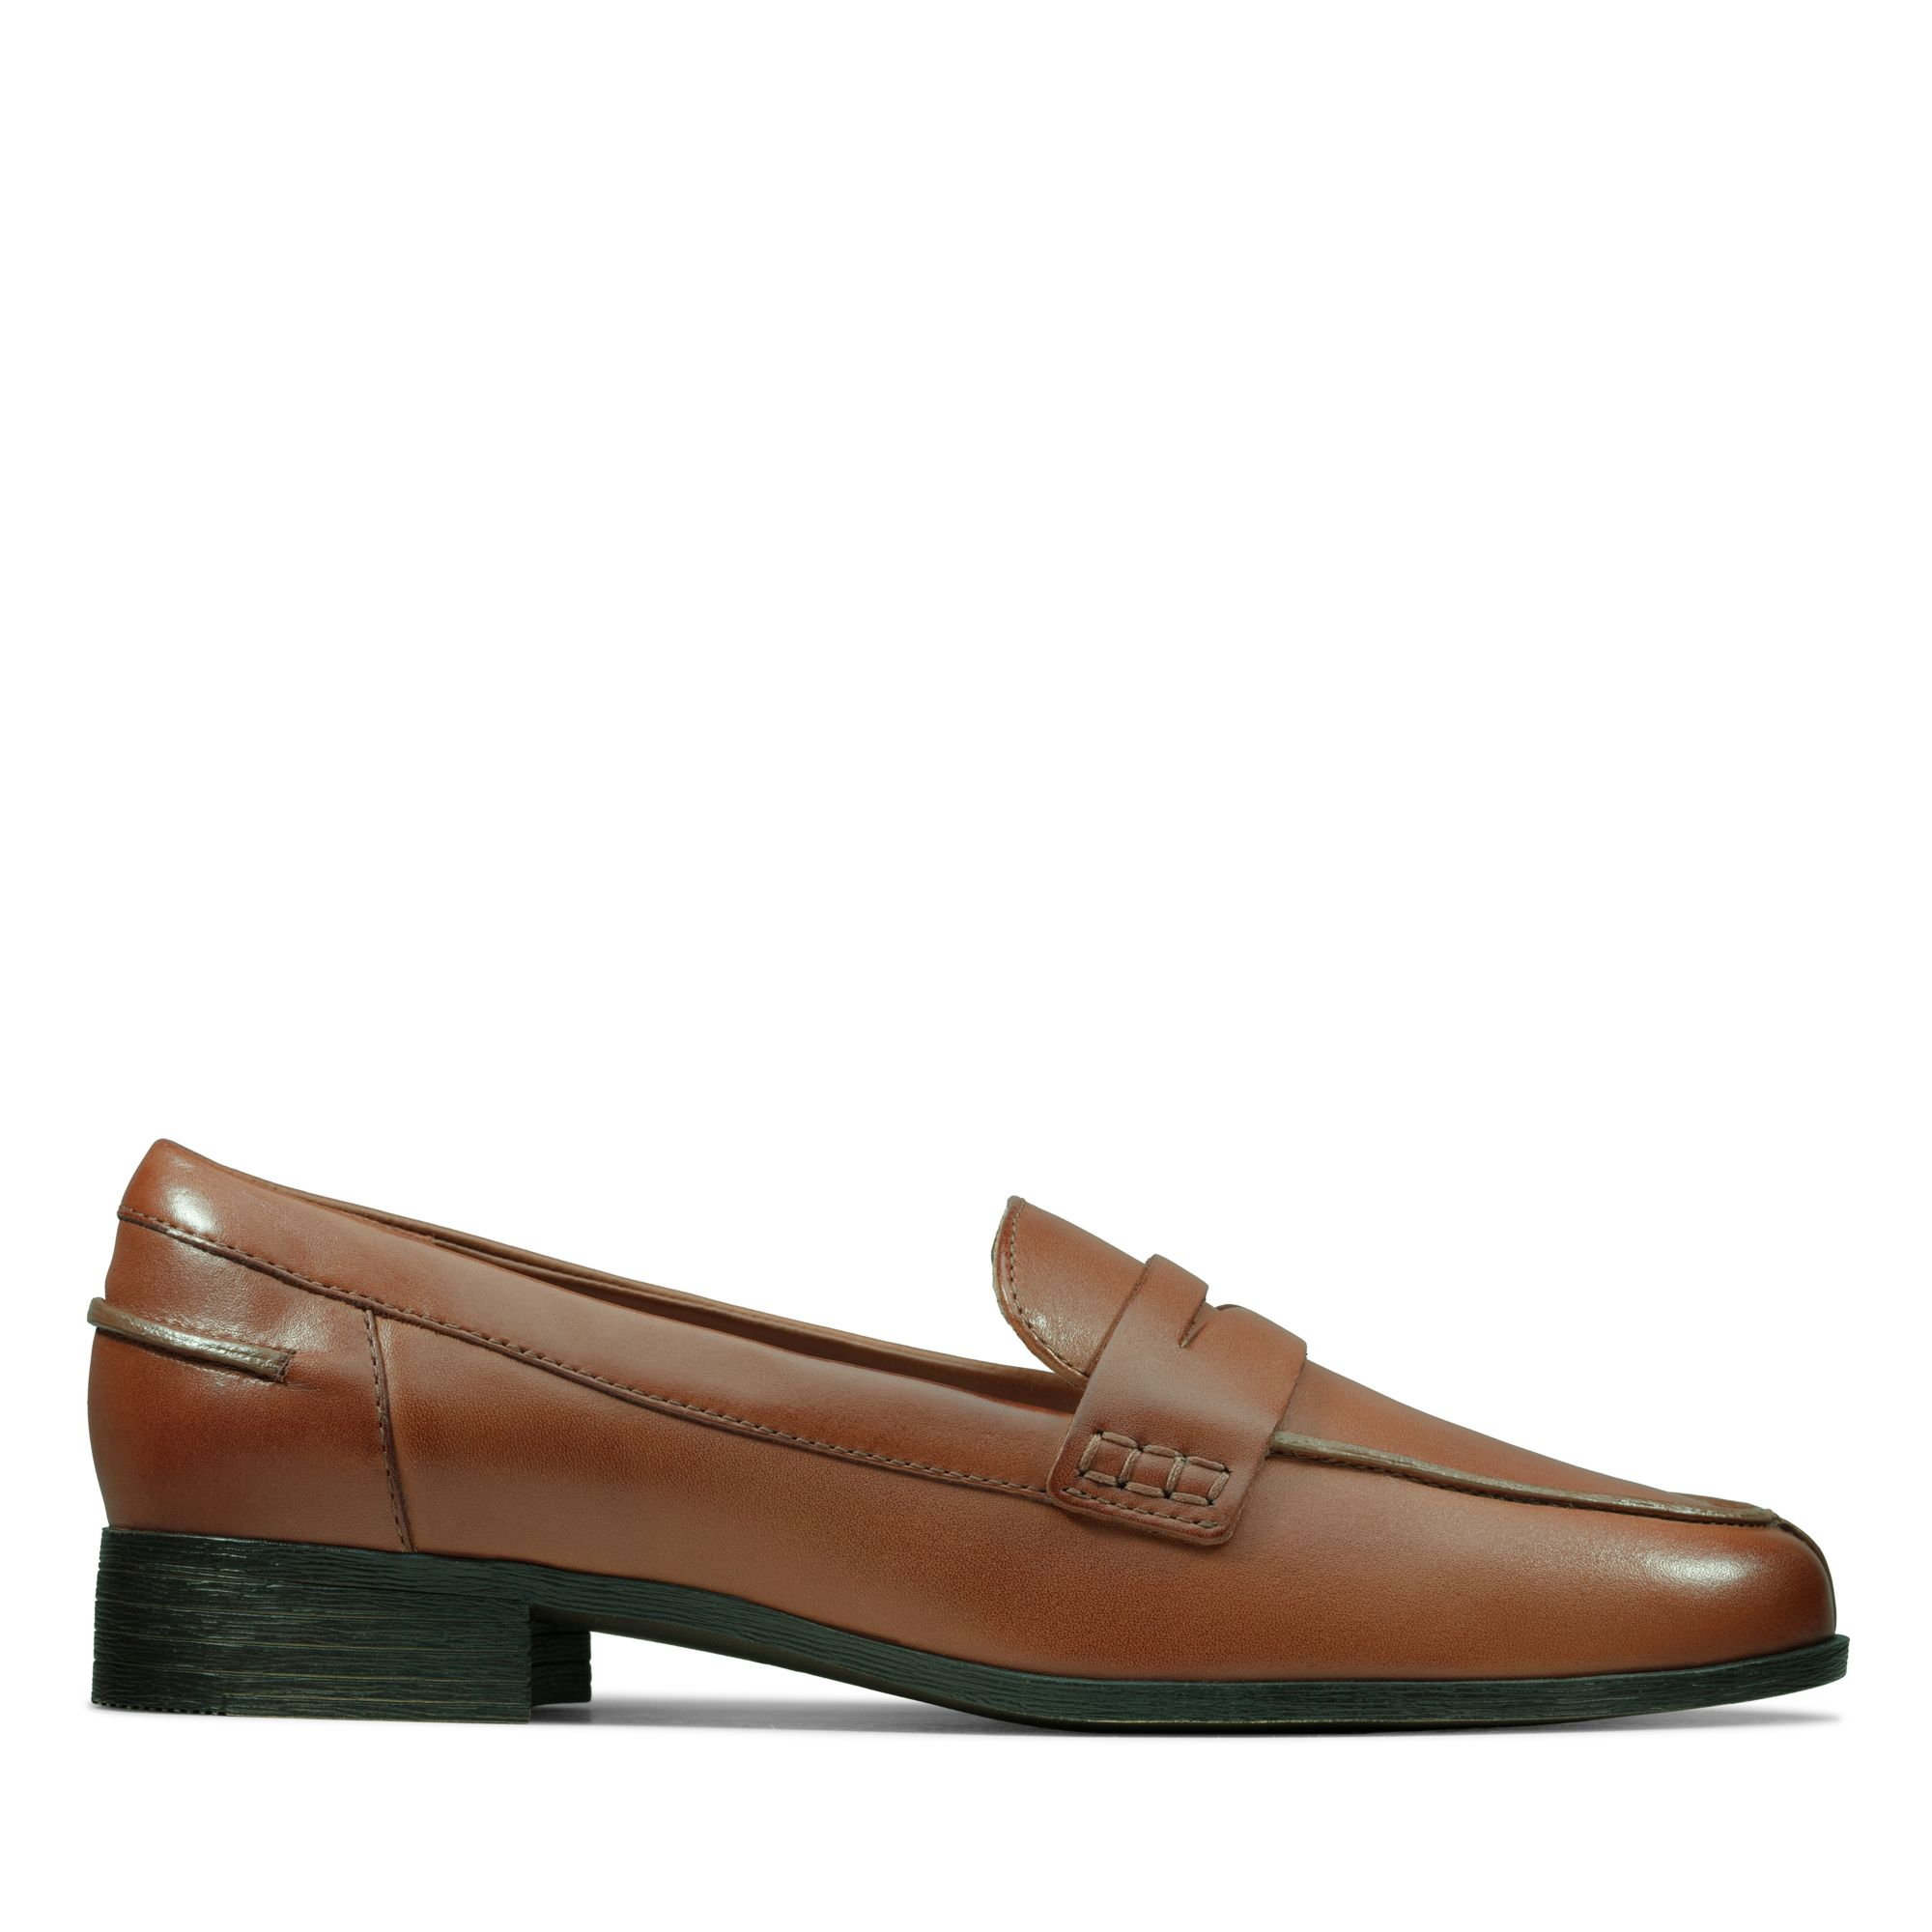 Clarks Hamble Loafer – Leather